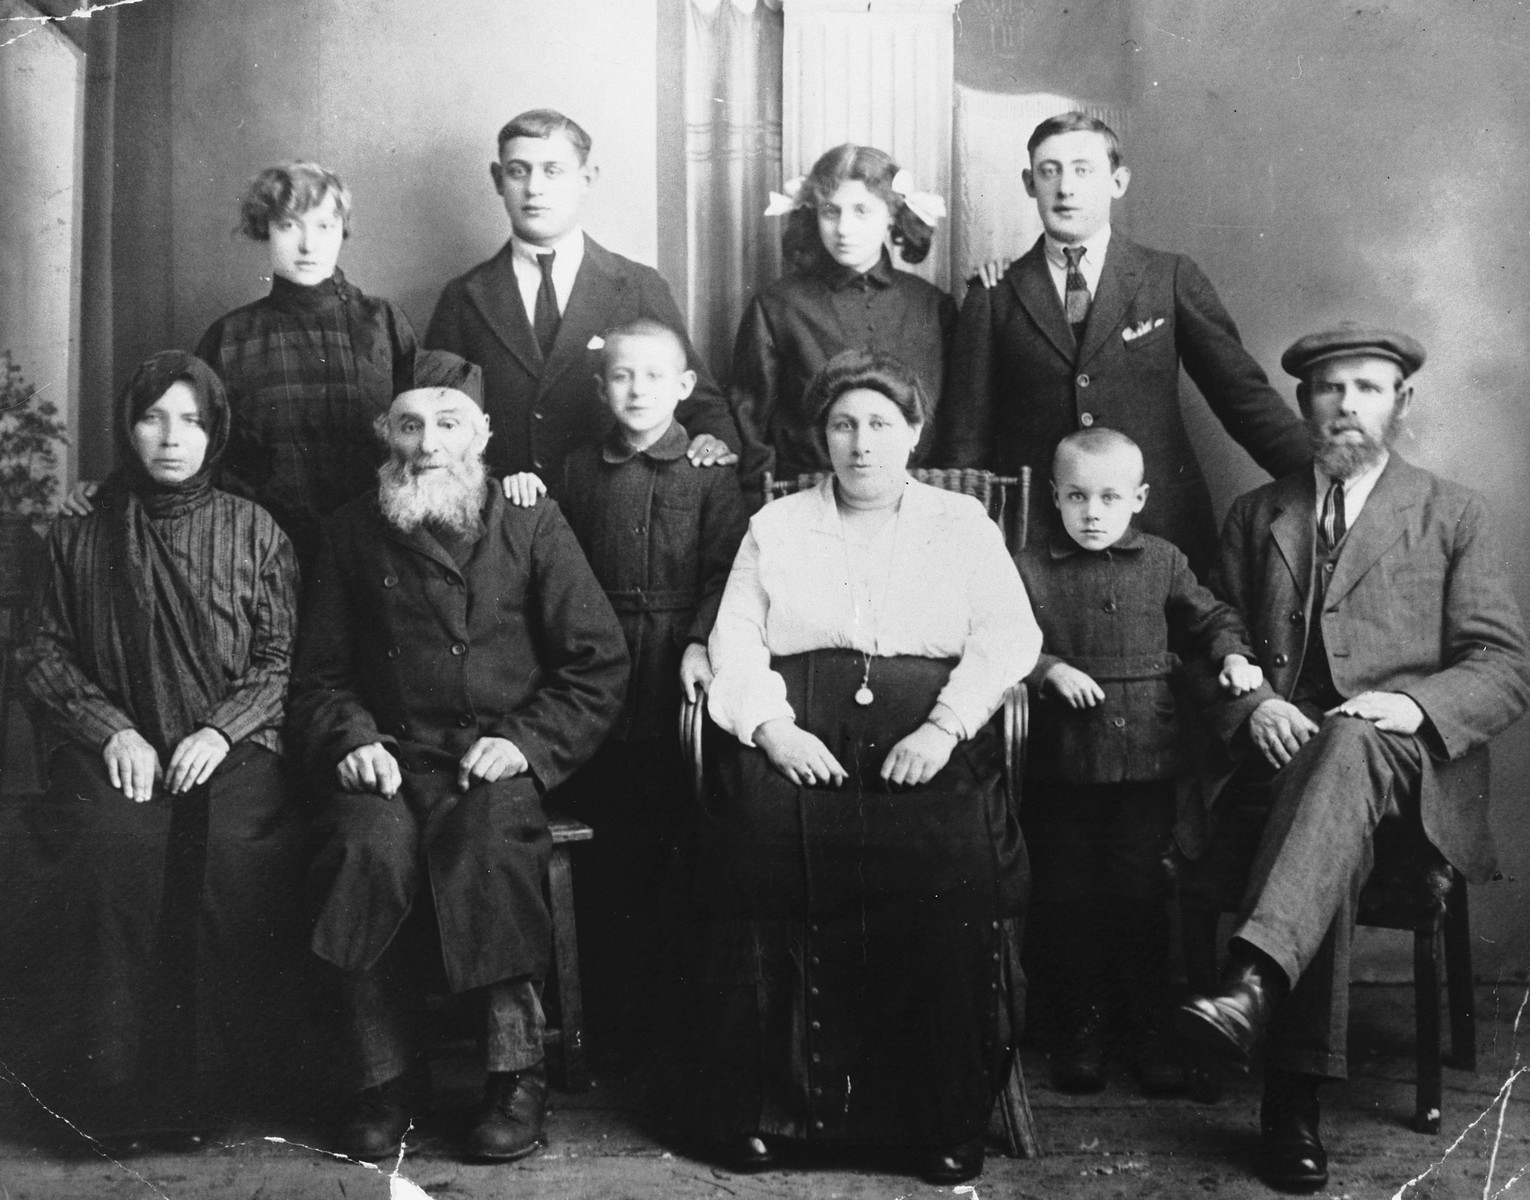 Studio portrait of the extended Fleisher family of Kursenai Lithuania.  Front left to right: great-aunt of the donor, Grandfather Shmoel-Hirsh, Reuven-Leib, Tame-Dvora (mother of donor), Yehezkel and Shlomo David Fleisher (father of donor).  Back row: Batia Michaele, Zalman Lezer, Esther Raize and Haim Ber Fleisher.